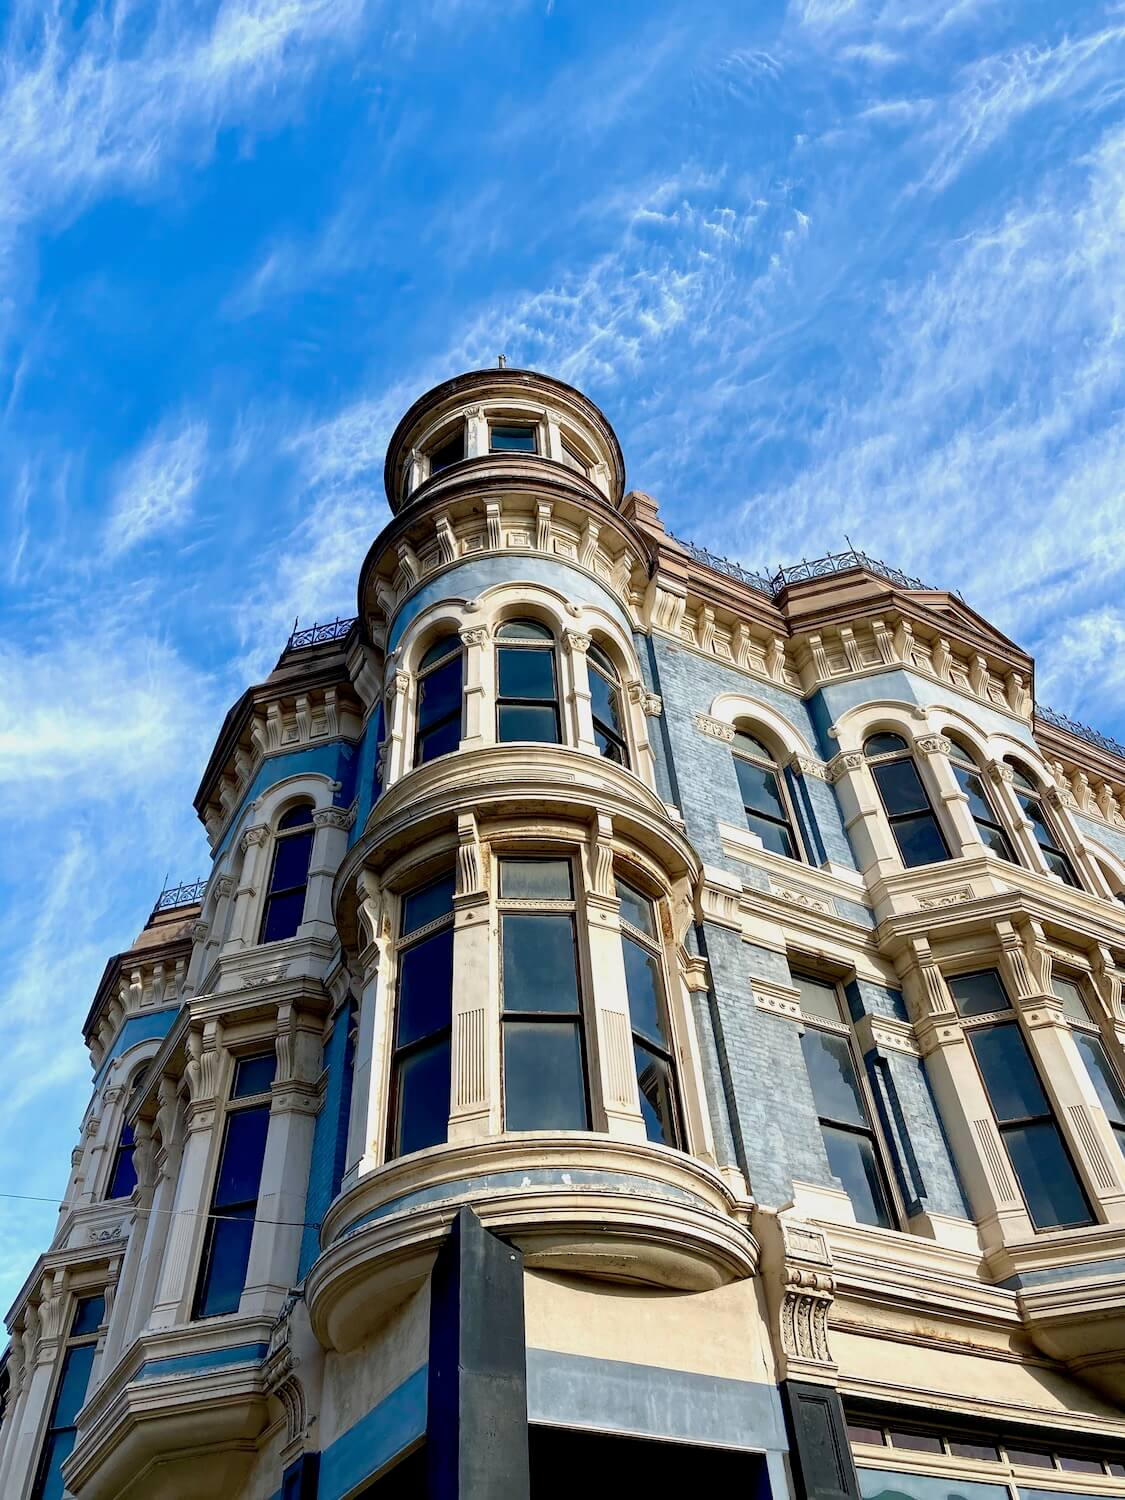 A towering Victorian building rises up on the Main Street of downtown Port Townsend. The ornate three story building utilities a combination of light blue brick with ornate white bordered windows with metal fencing like grating that lines the roof. The sky above is blue with swirls of white clouds.